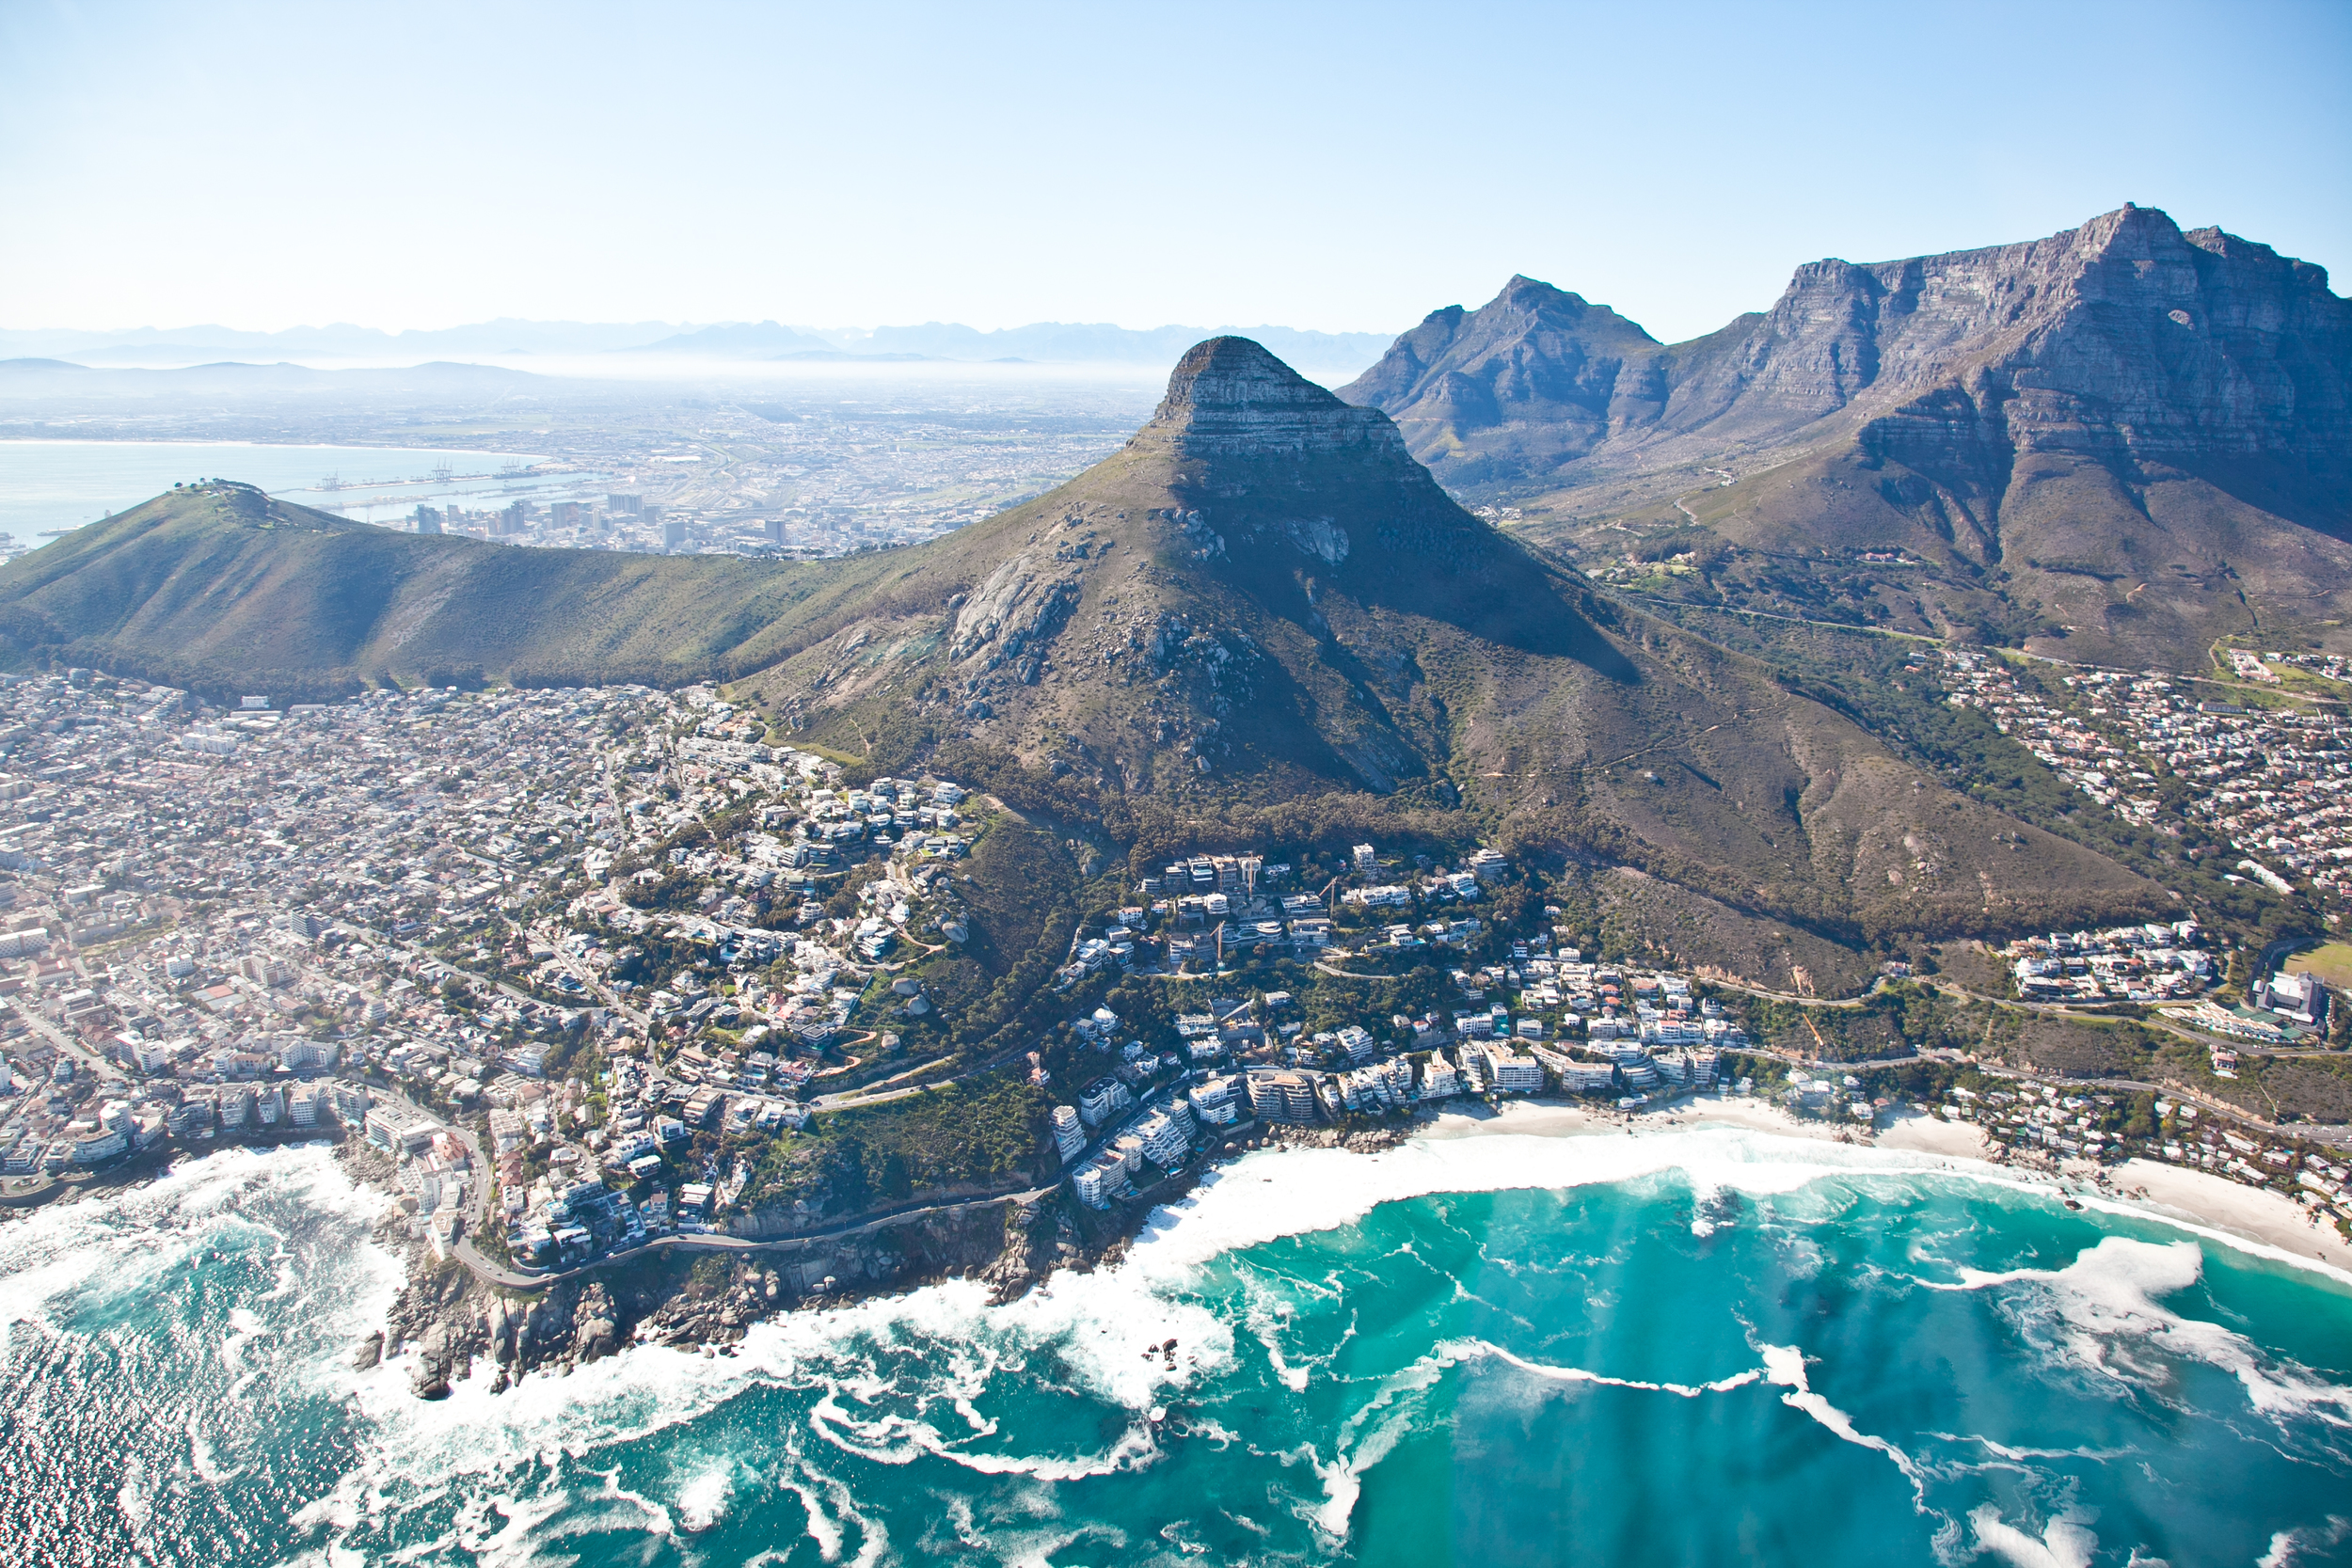 IMG_4820-cape-town-south-africa-helicopter-ride-trisa-taro